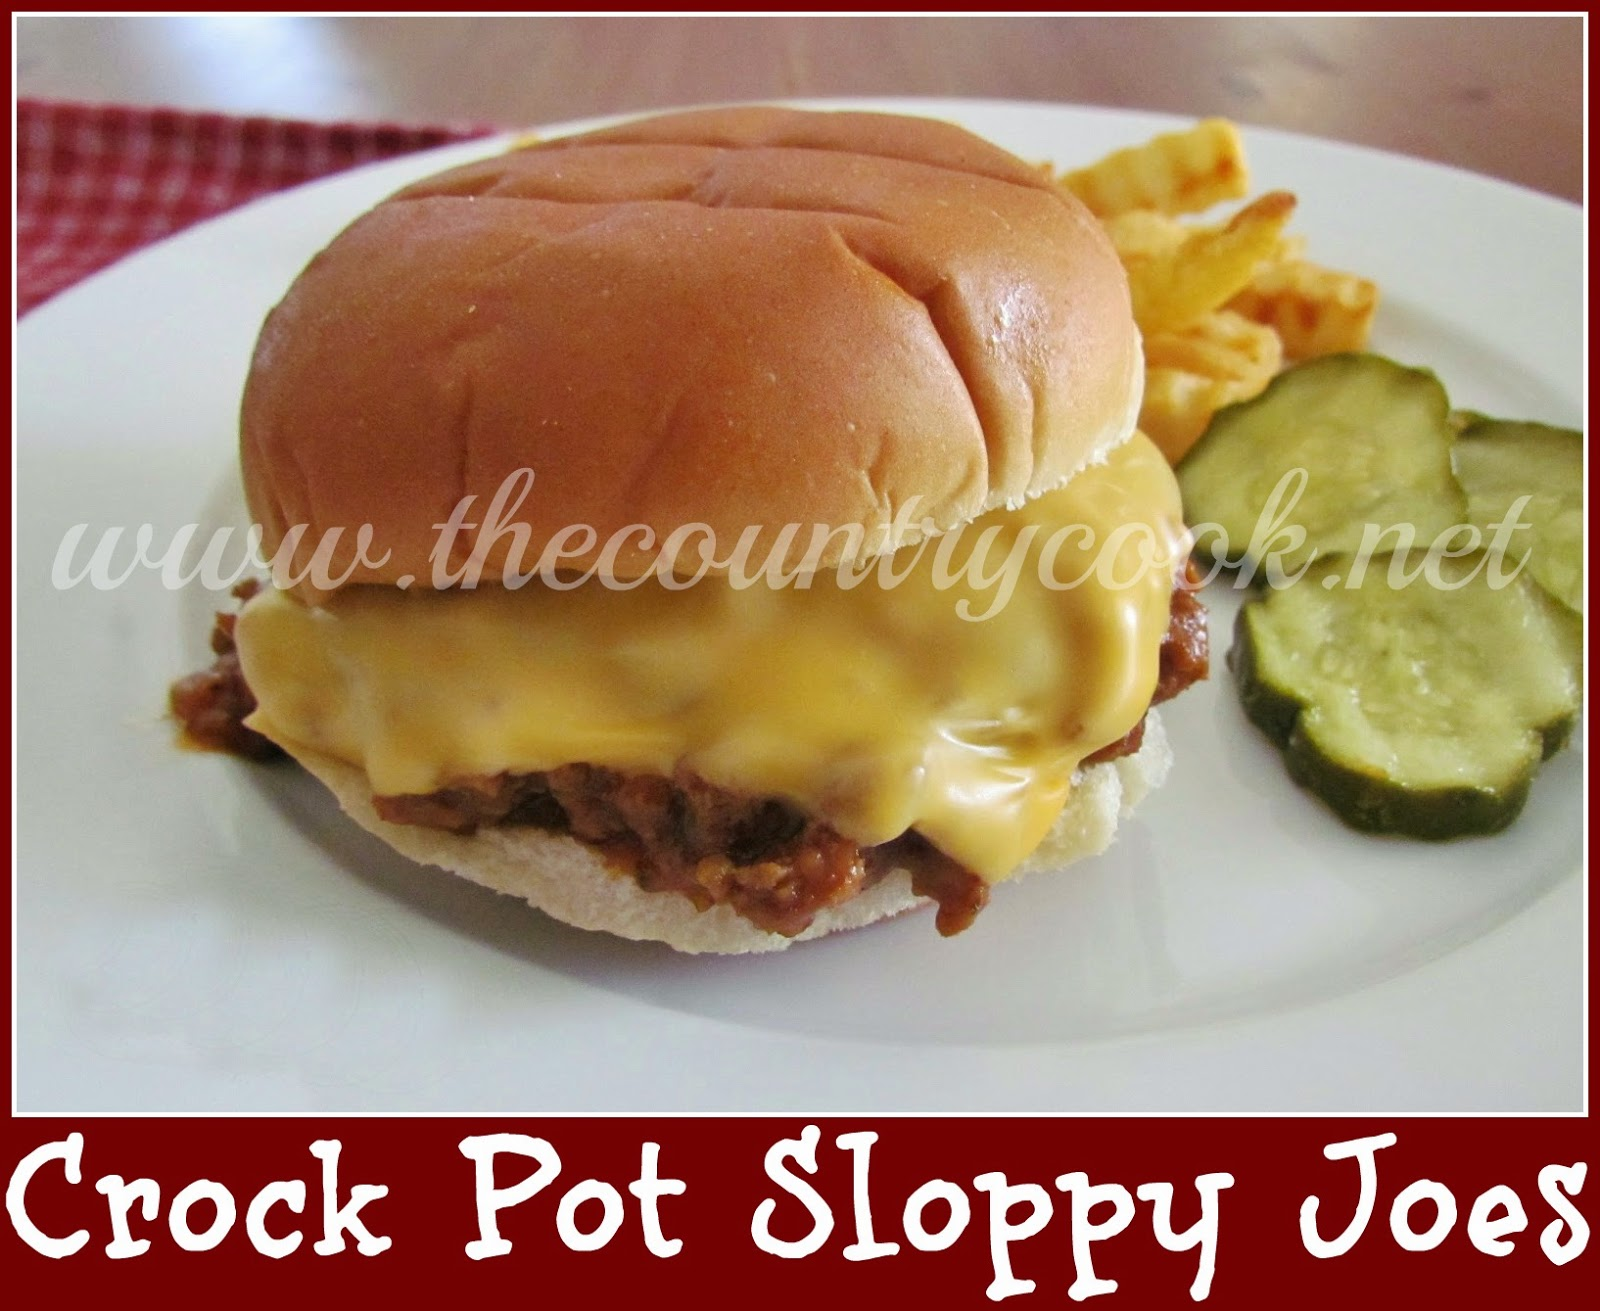 Also, if you are looking for more fun Crock Pot Recipes, be sure to ...